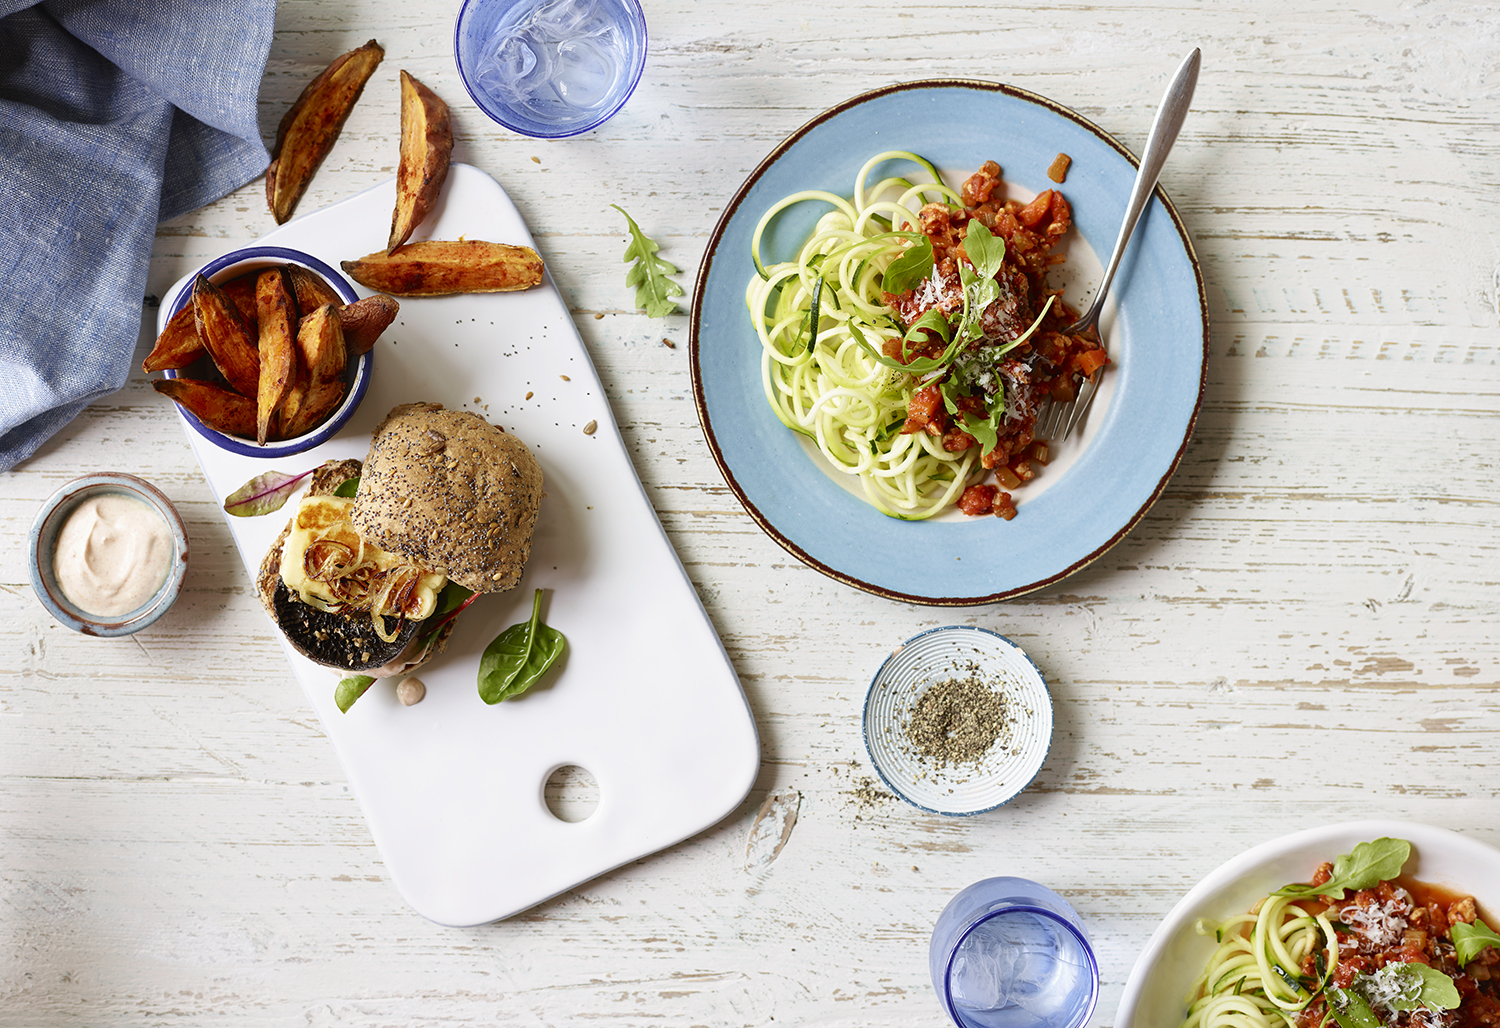 Editorial Food Photography by Lauren Mclean - Eat Healthy- Issue One - Burger & Ragu